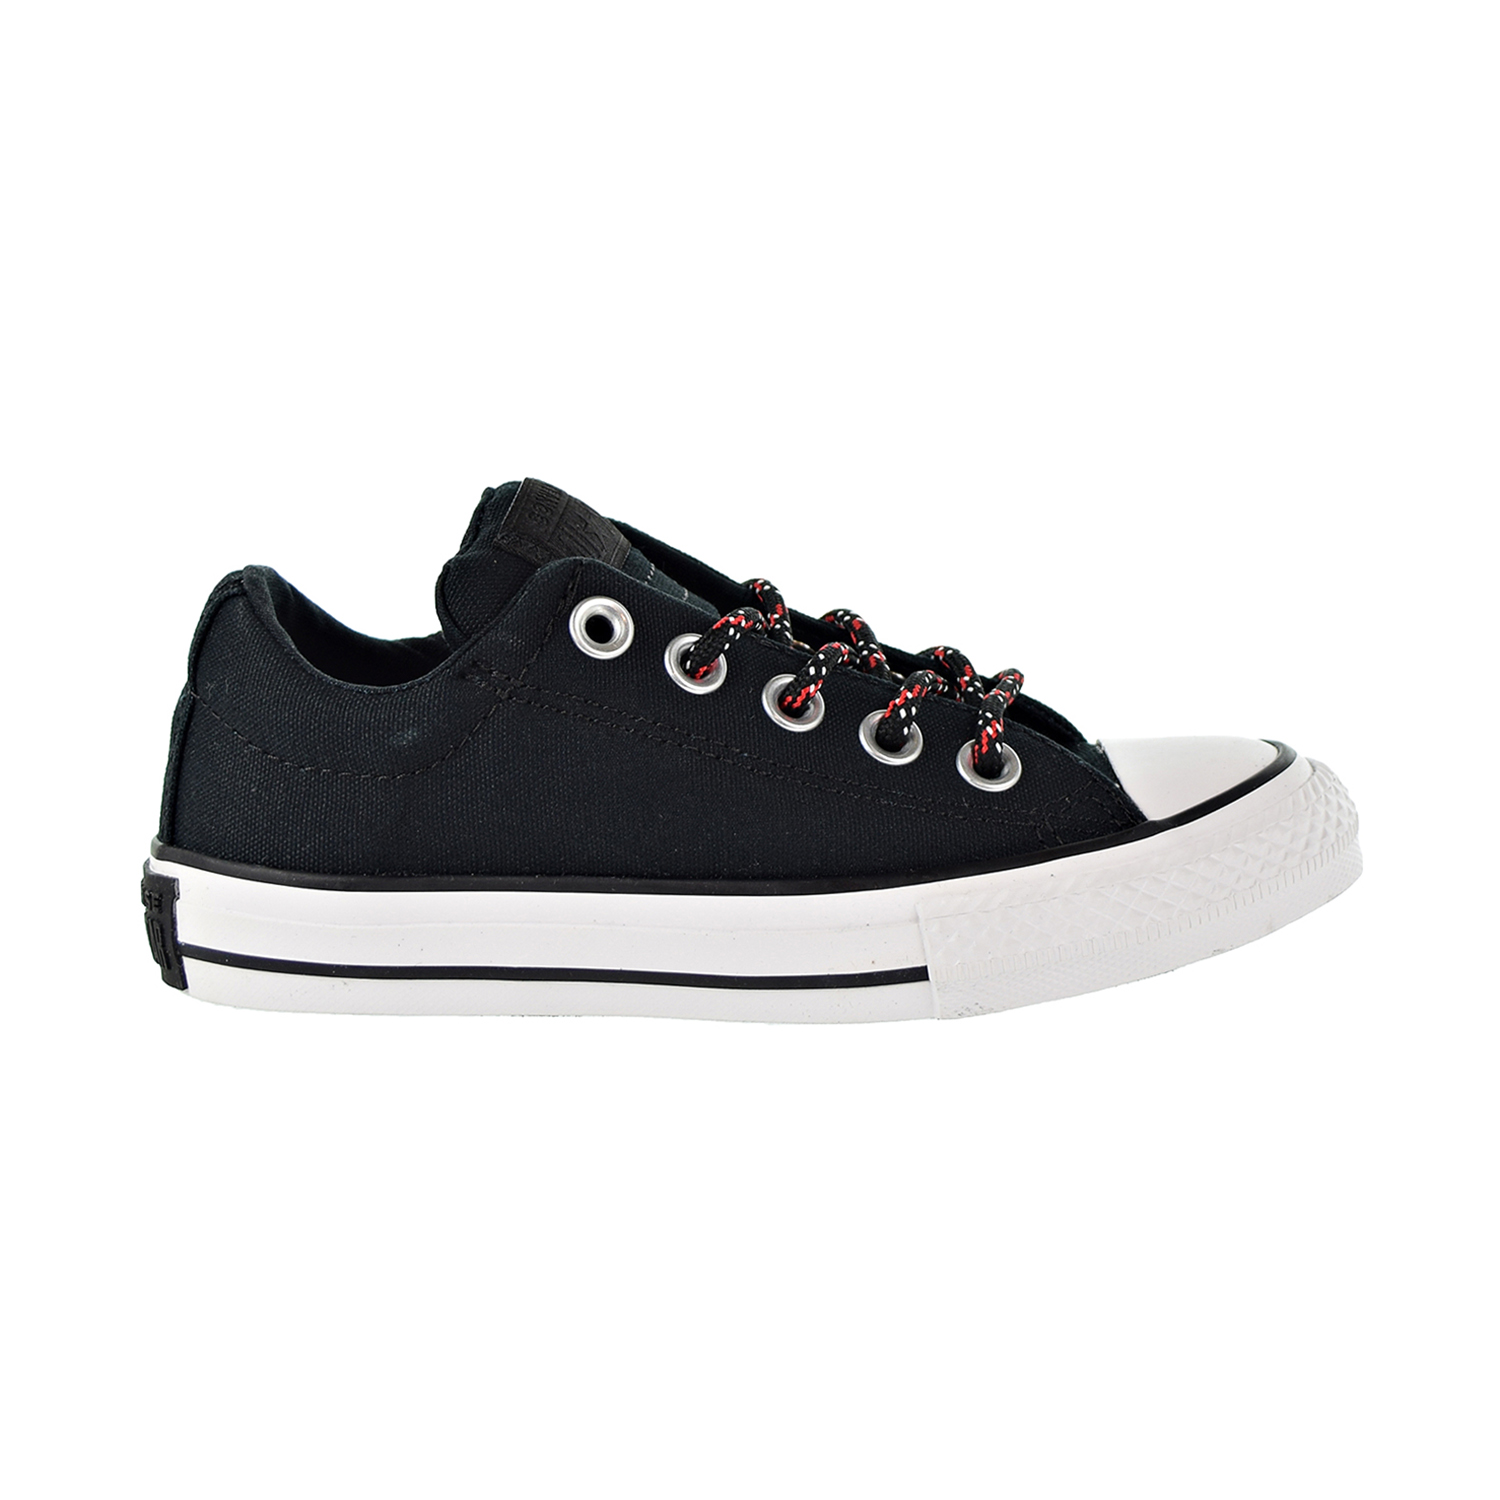 38ed333ffb66 Details about Converse Chuck Taylor All Star Street Slip Kids Shoes  Black Enamel Red 662340F